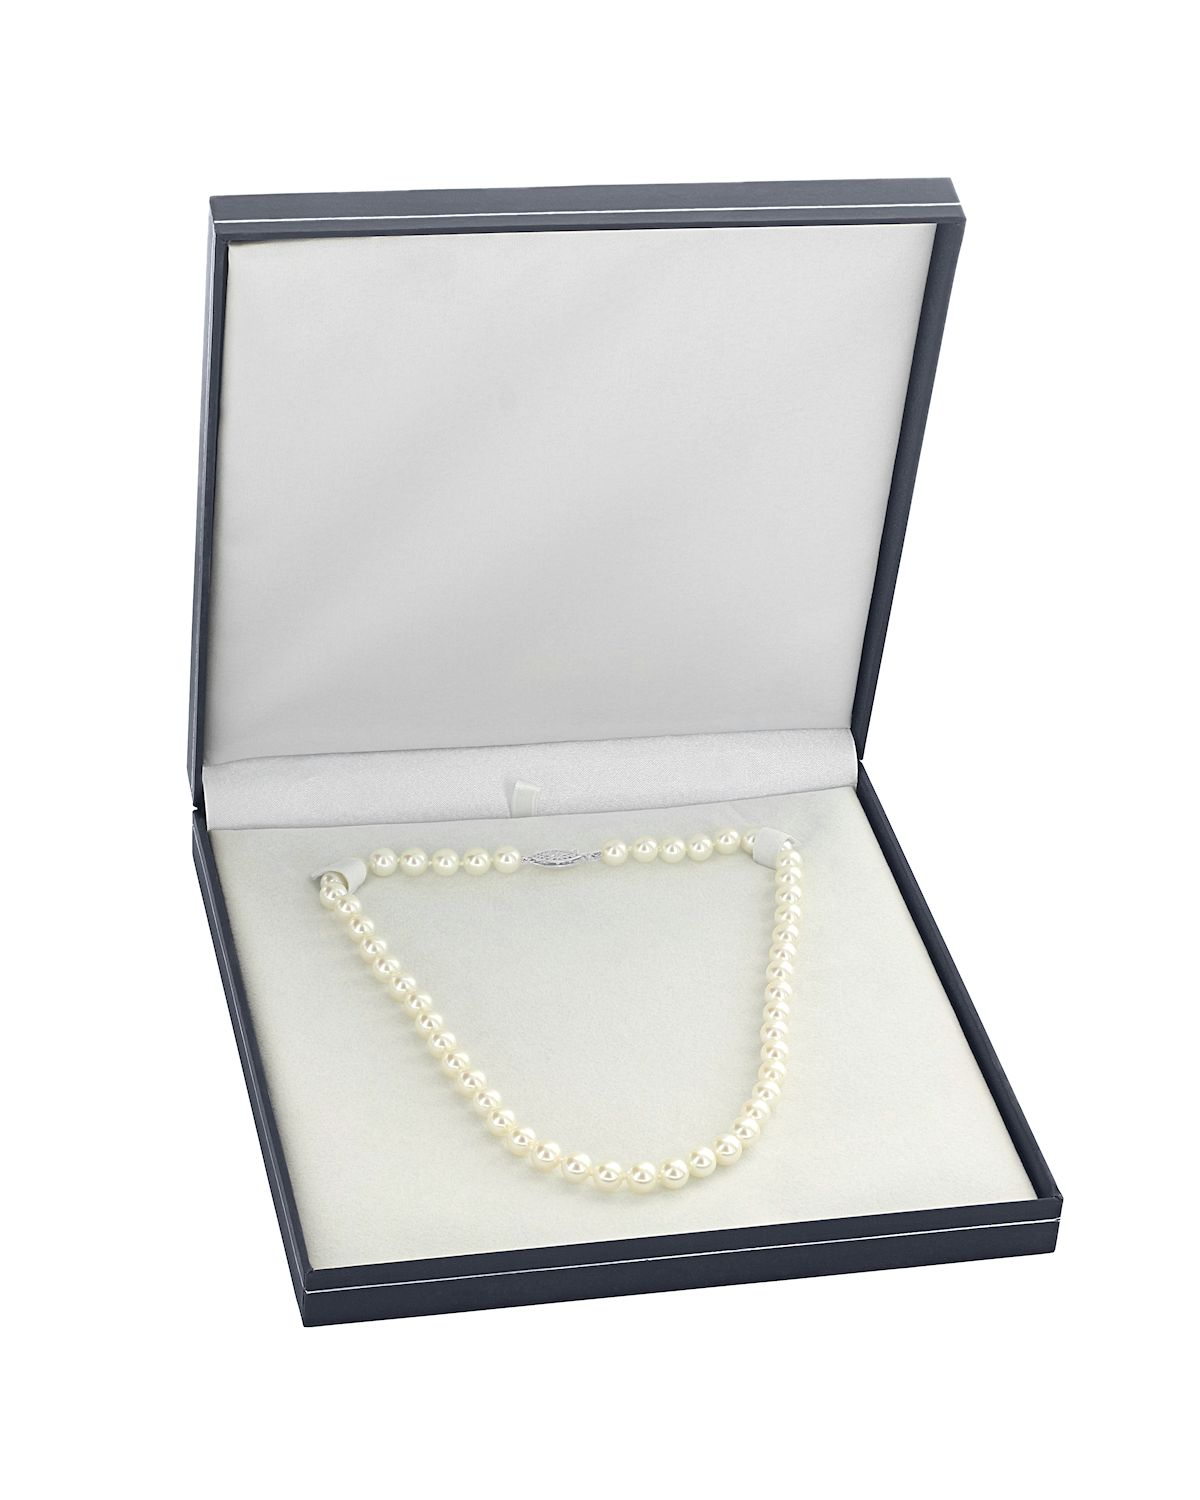 8-10mm Japanese Akoya White Pearl Necklace - AAA Quality - Third Image